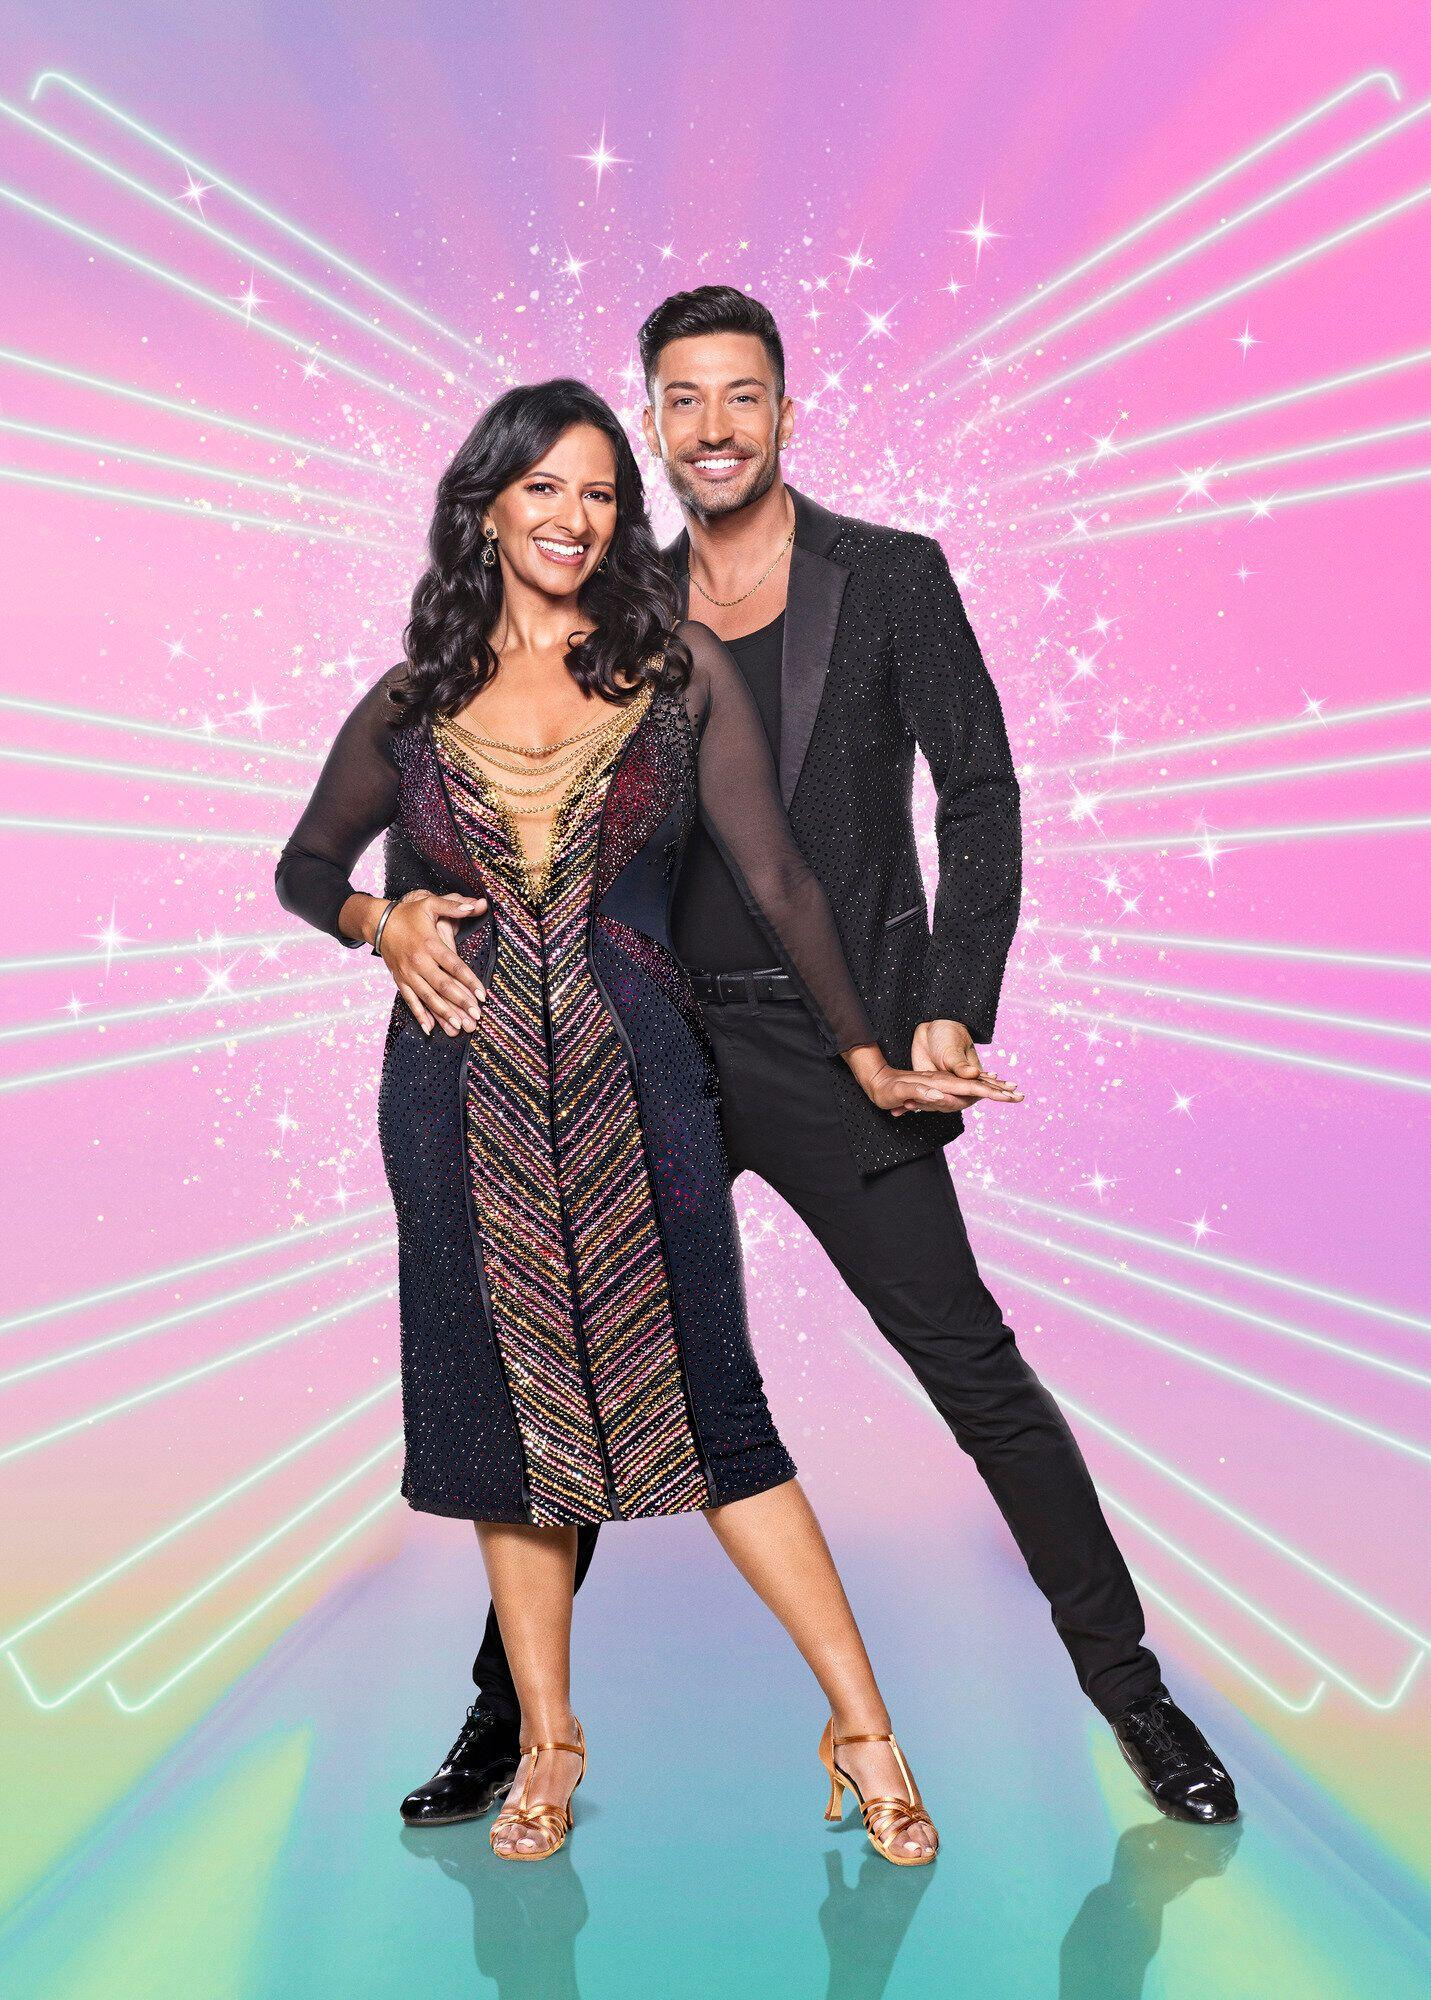 Ranvir Singh Gets Real About How Strictly Come Dancing Has Boosted Her Body Confidence